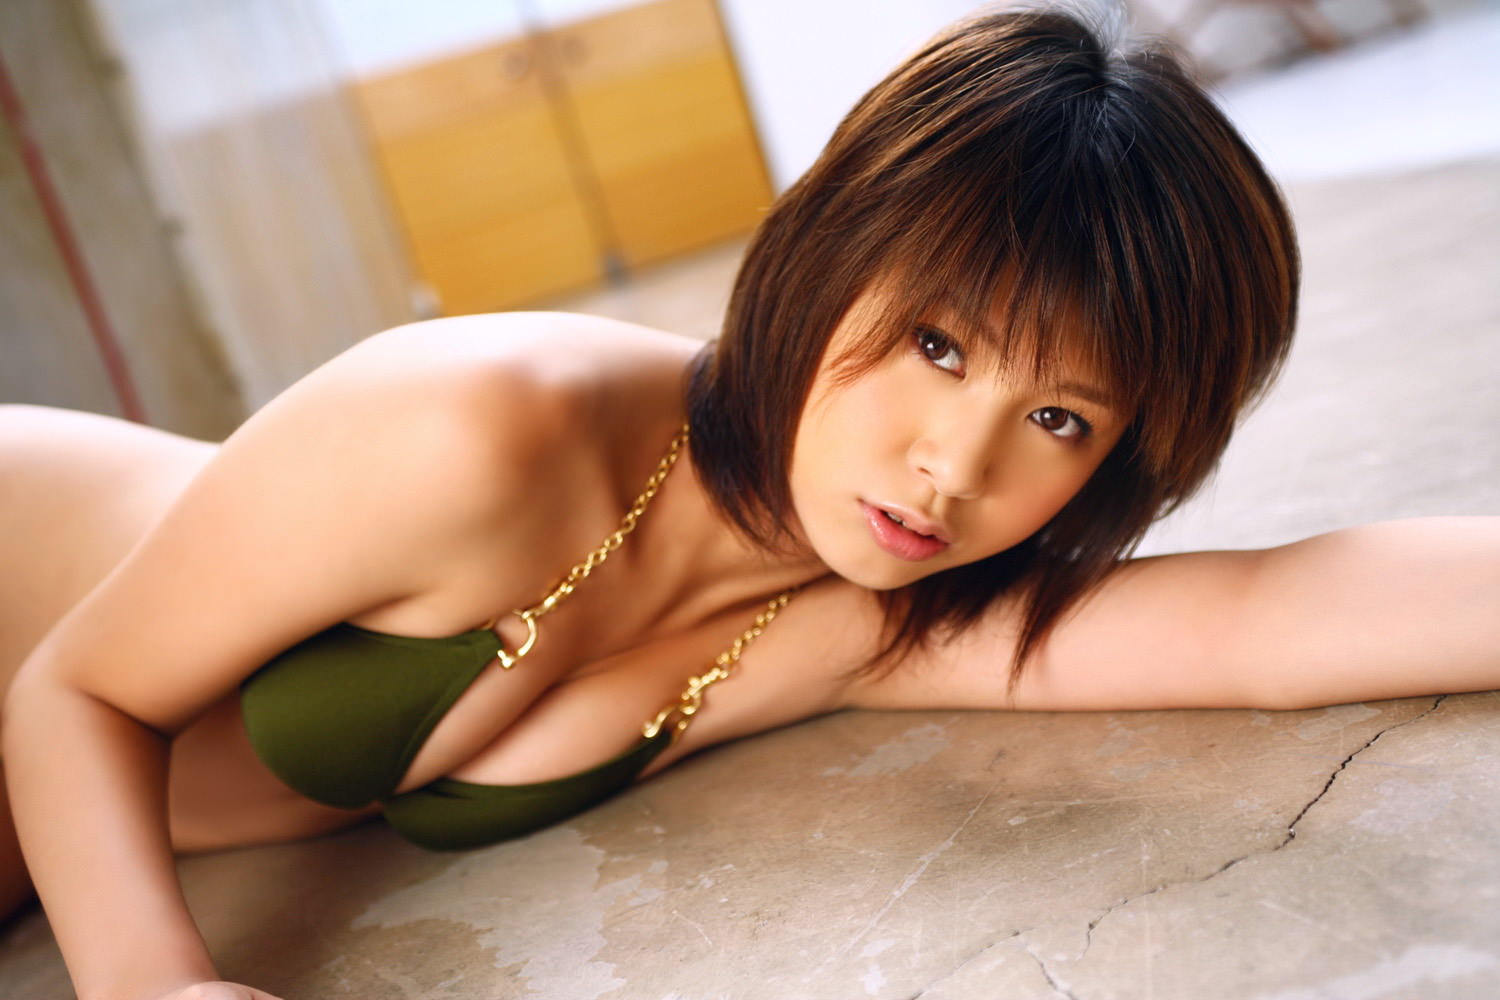 Yuka Kosaka Photo Gallery